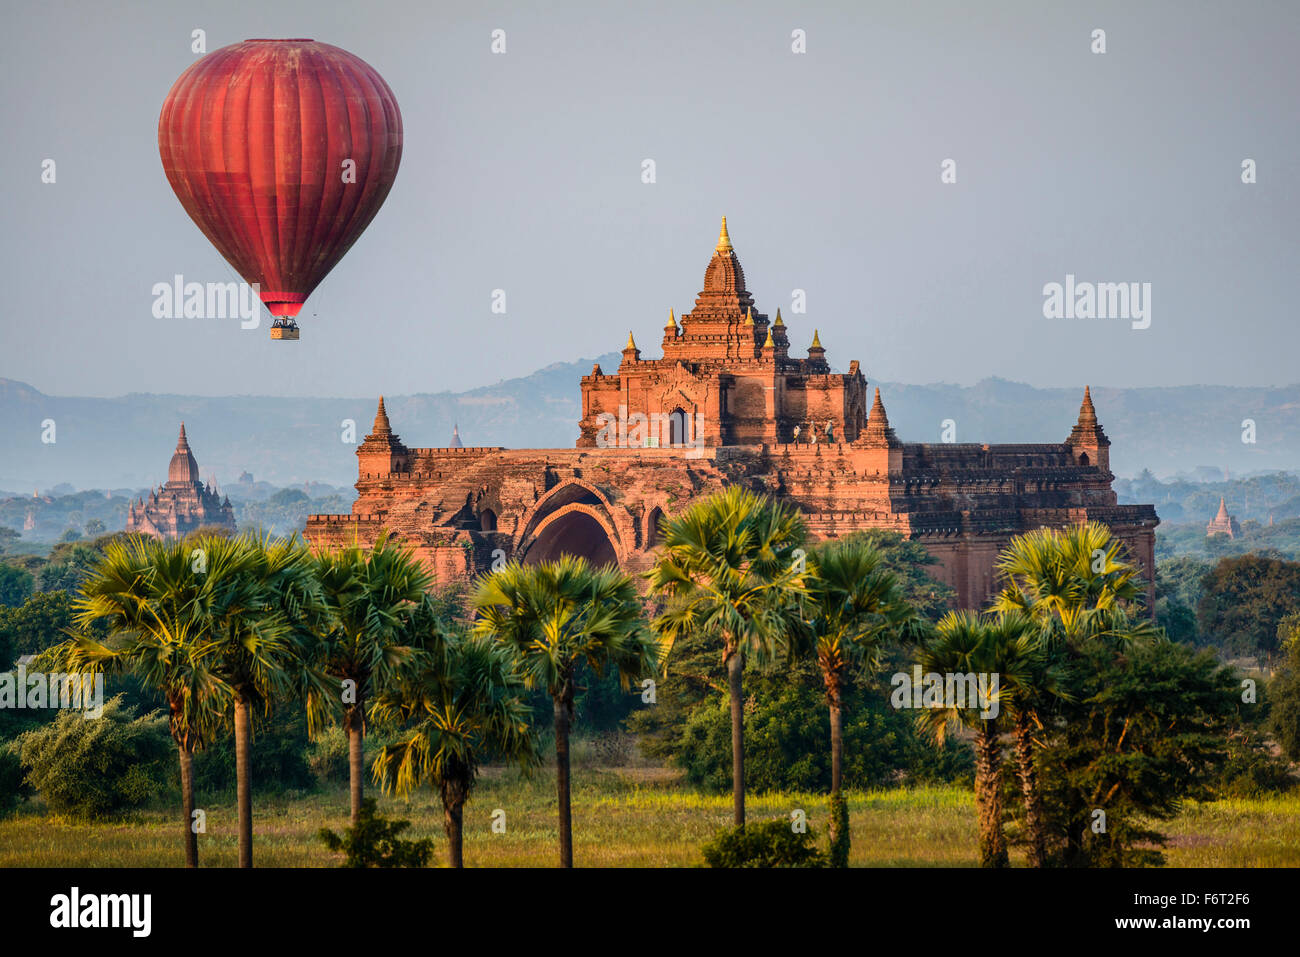 Hot air balloon flying over temple - Stock Image